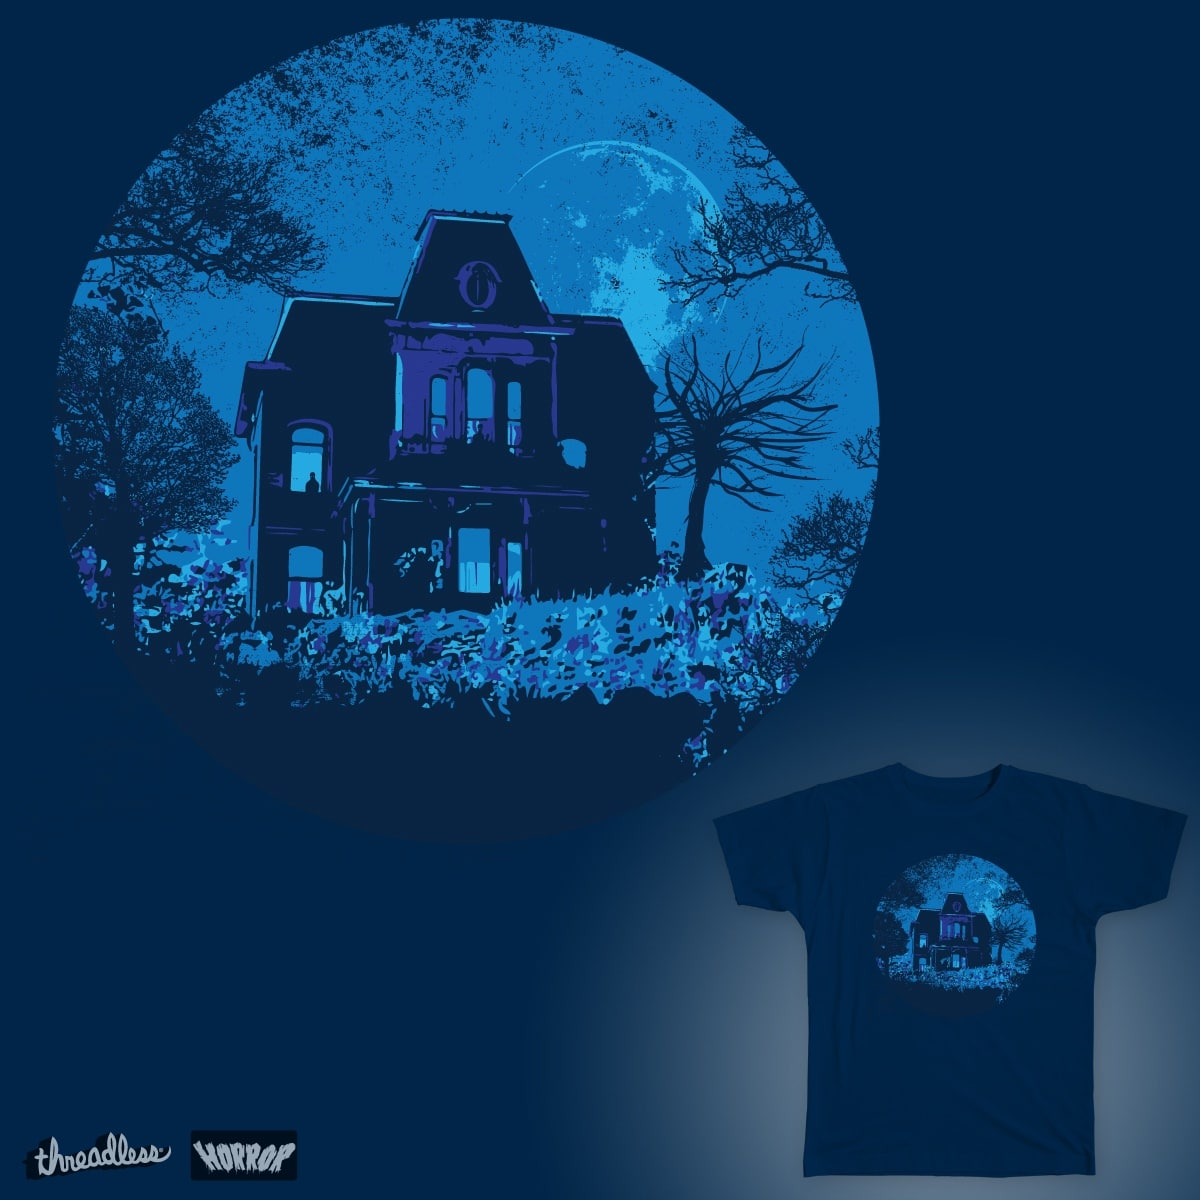 Home Sweet Home by vectorbug on Threadless